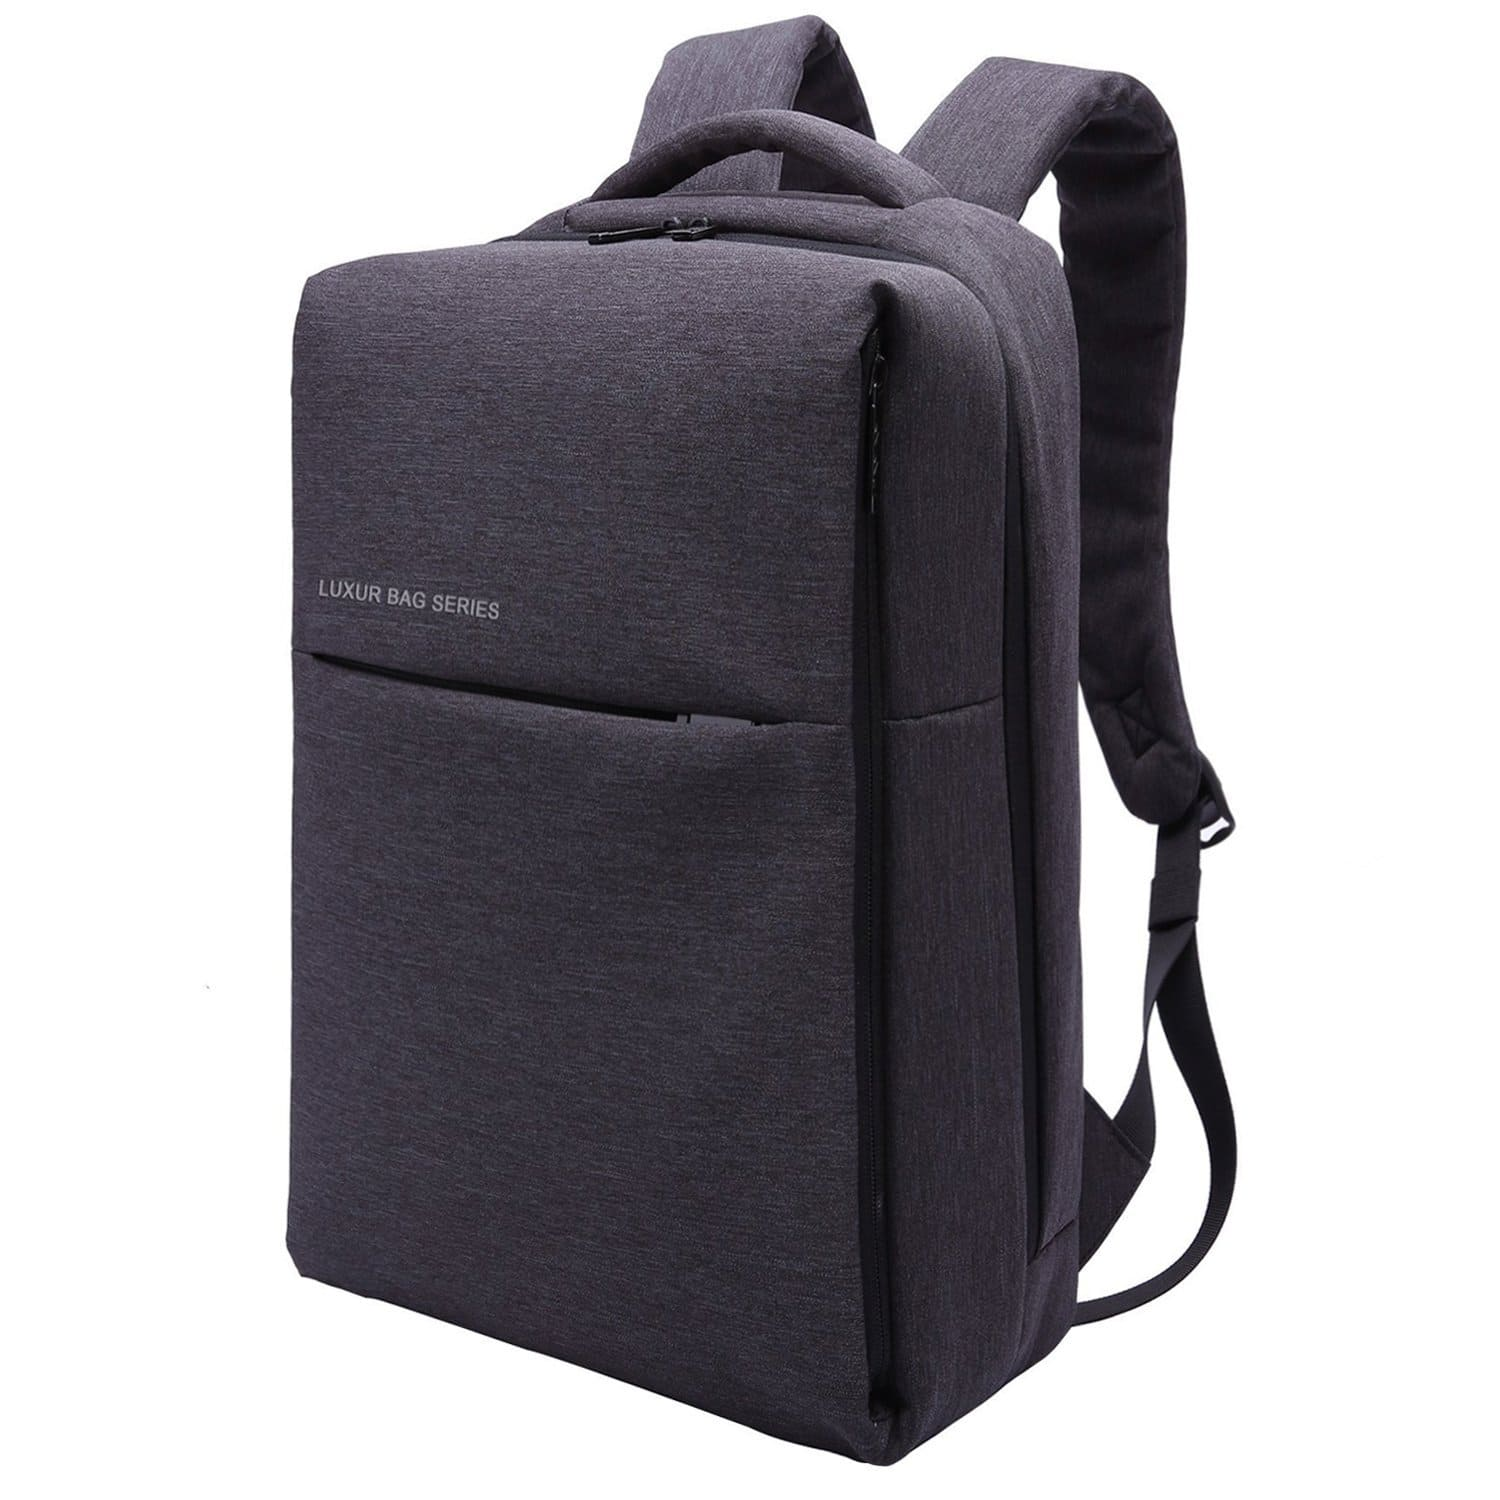 14-Inch 28L Laptop Backpack $12.90 AC + FS @ Amazon (w/ Prime)